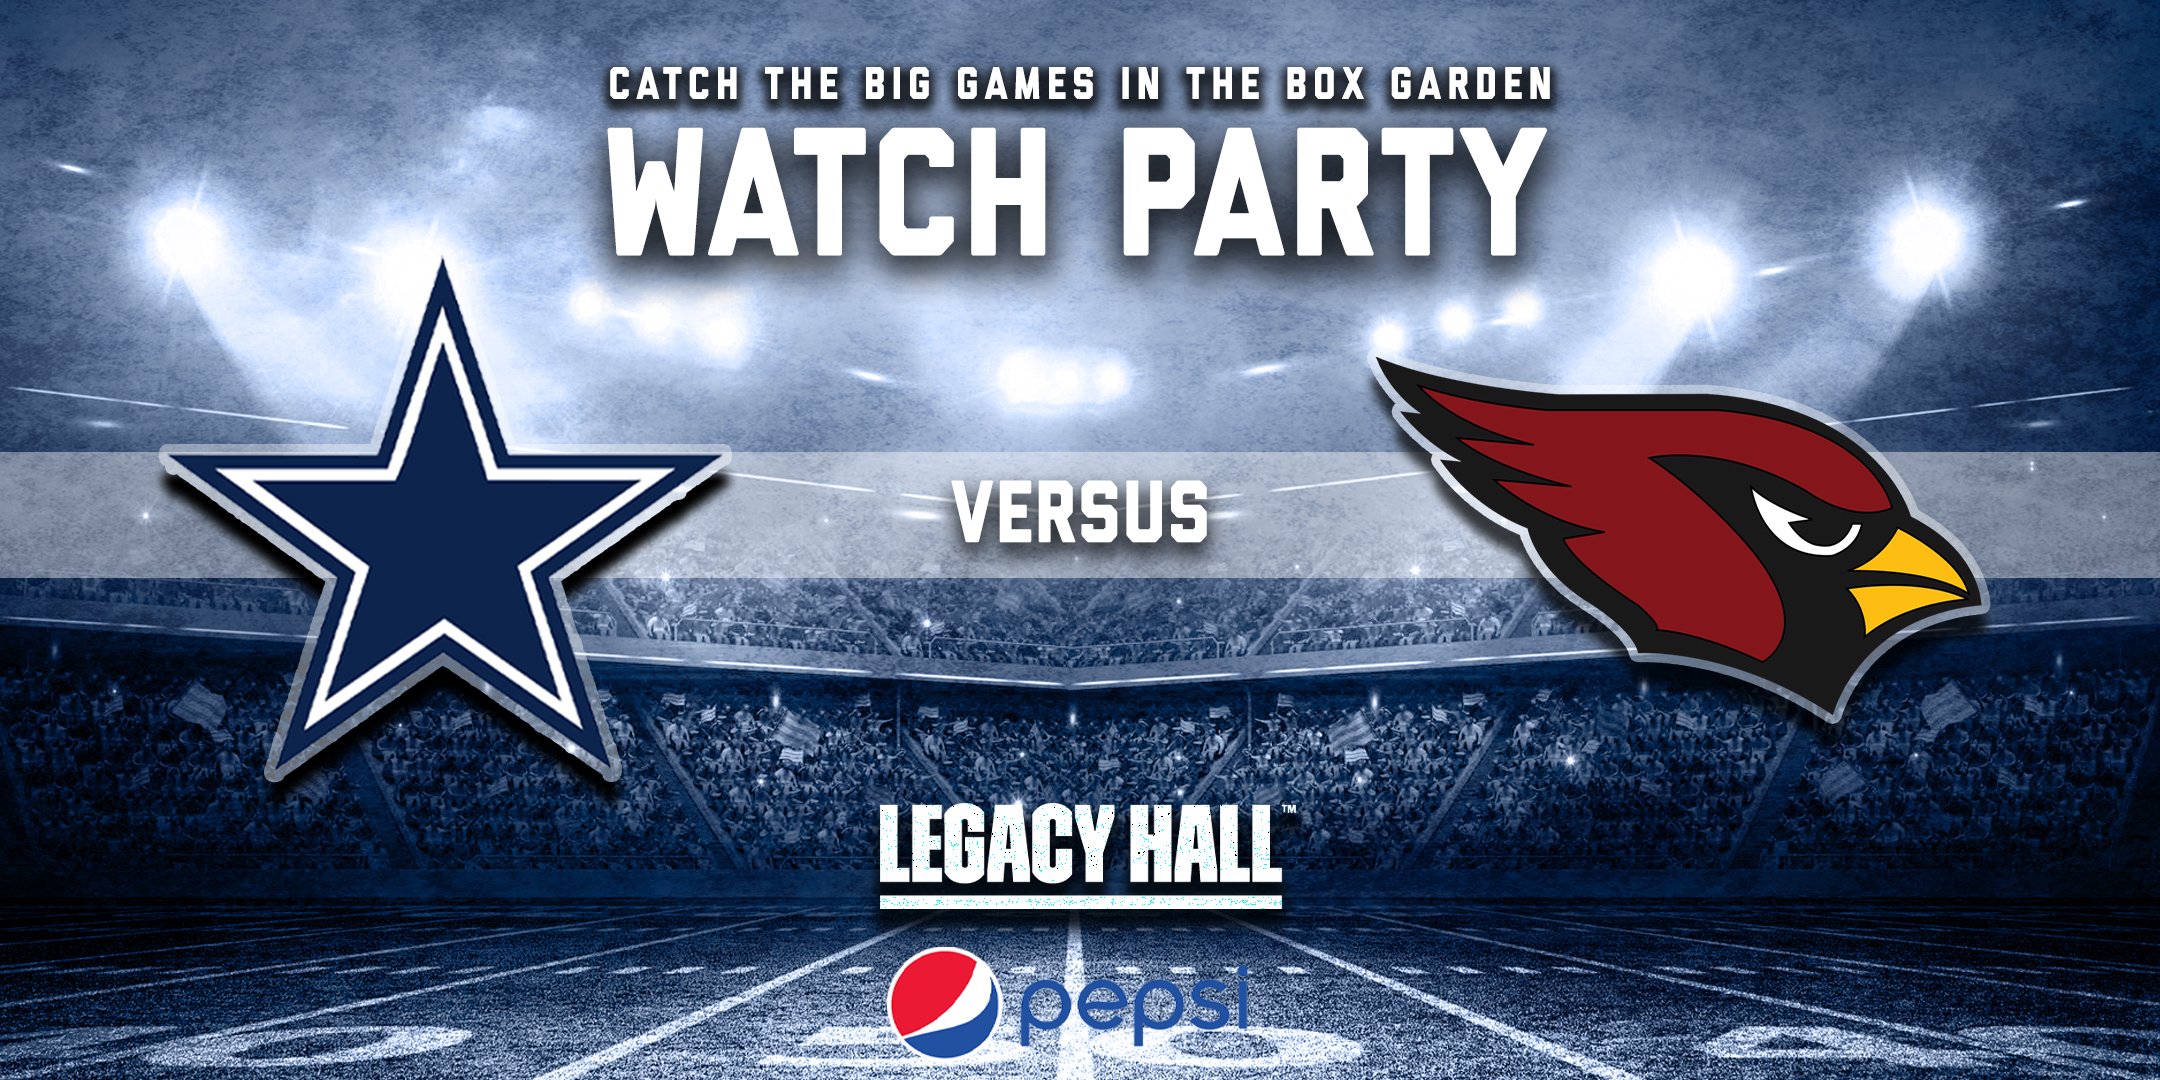 Promo image of Cowboys vs. Cardinals Watch Party